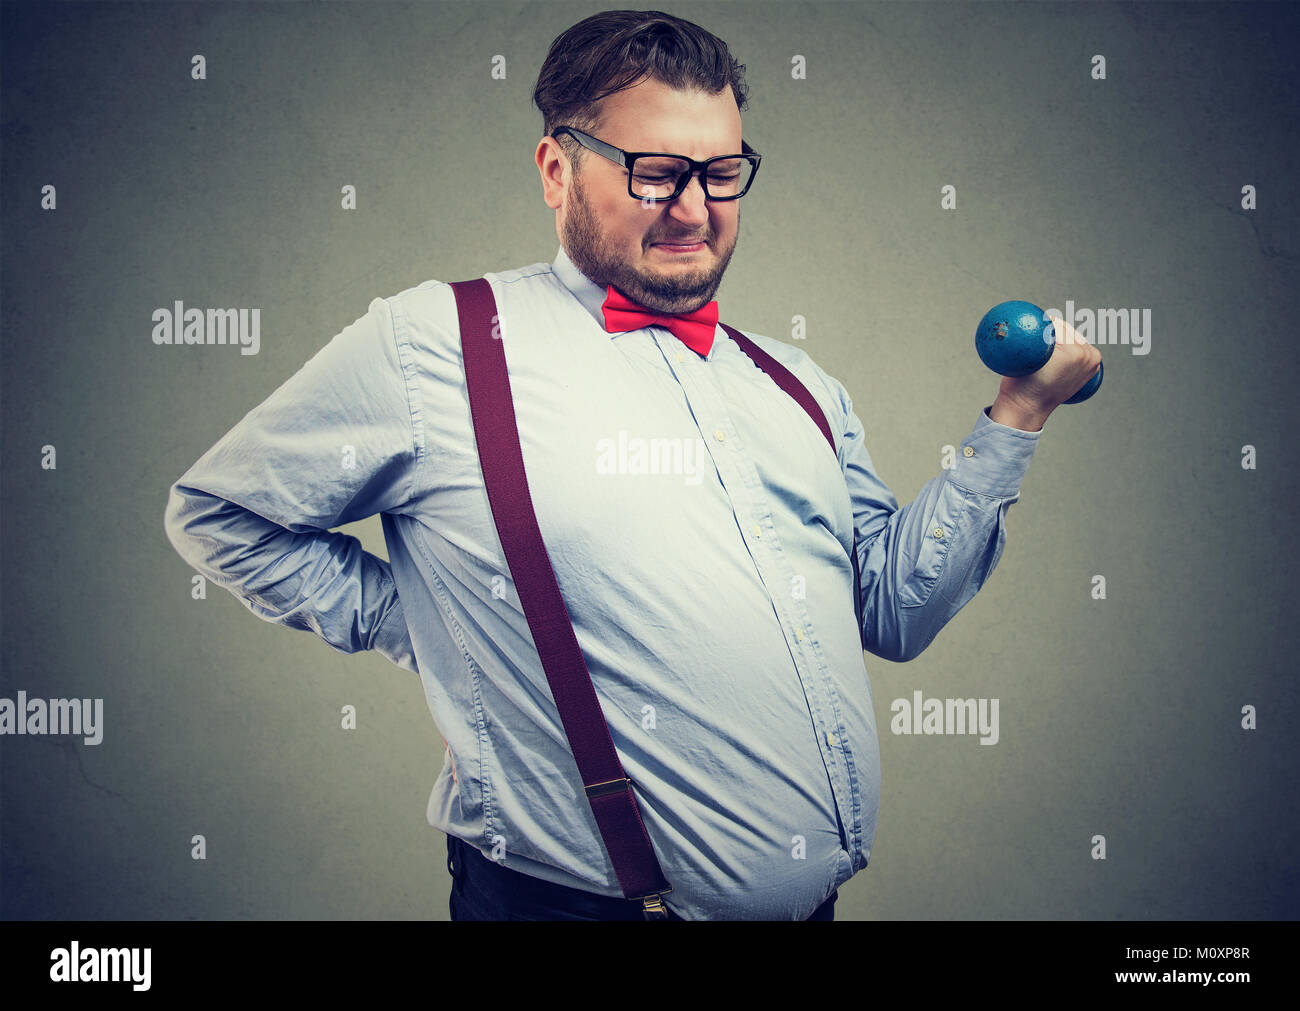 Young overweight man applying force to lift dumbbell frowning. - Stock Image